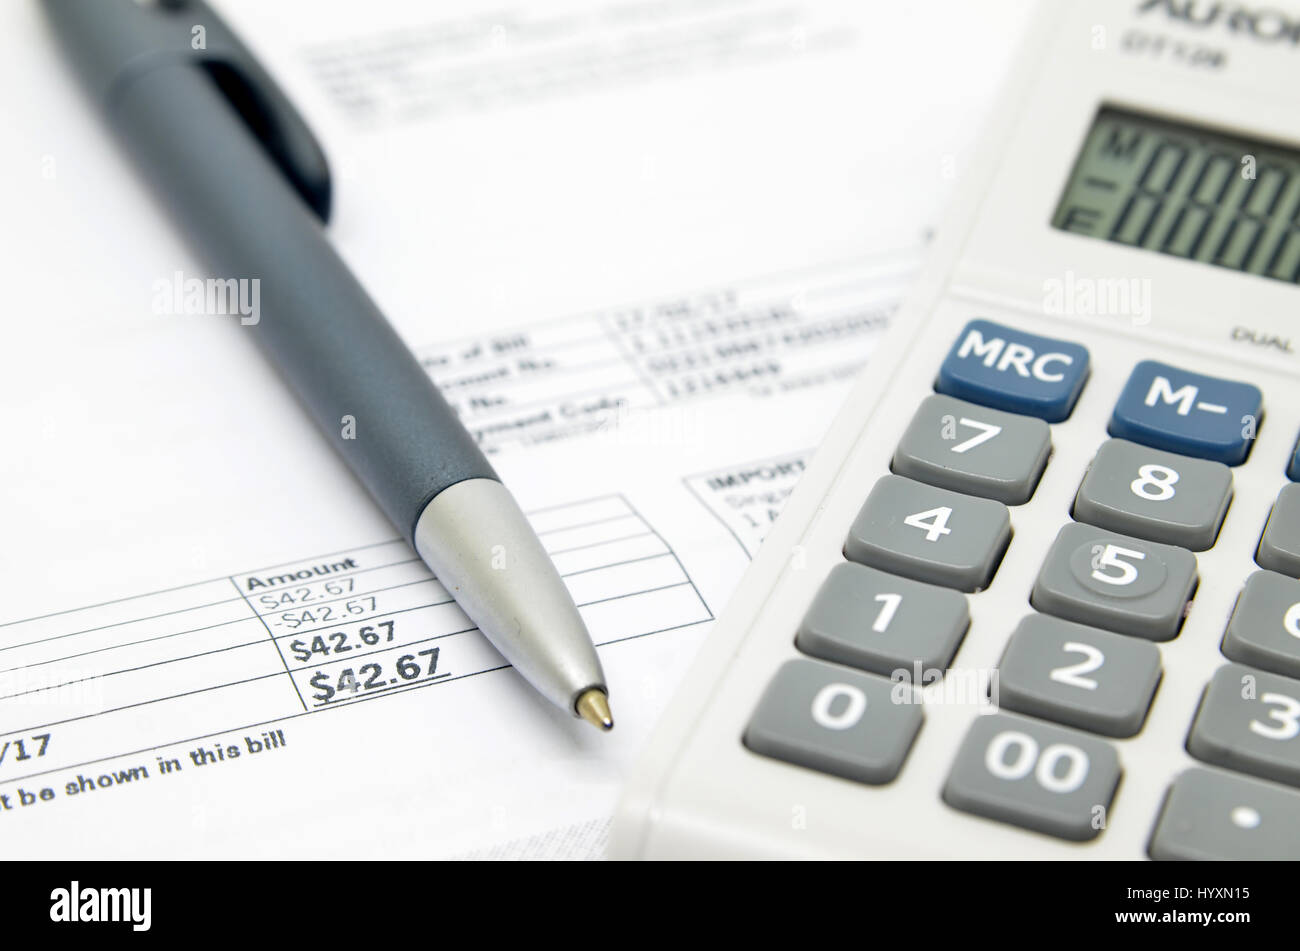 Pen on background of calculator and bill - Stock Image